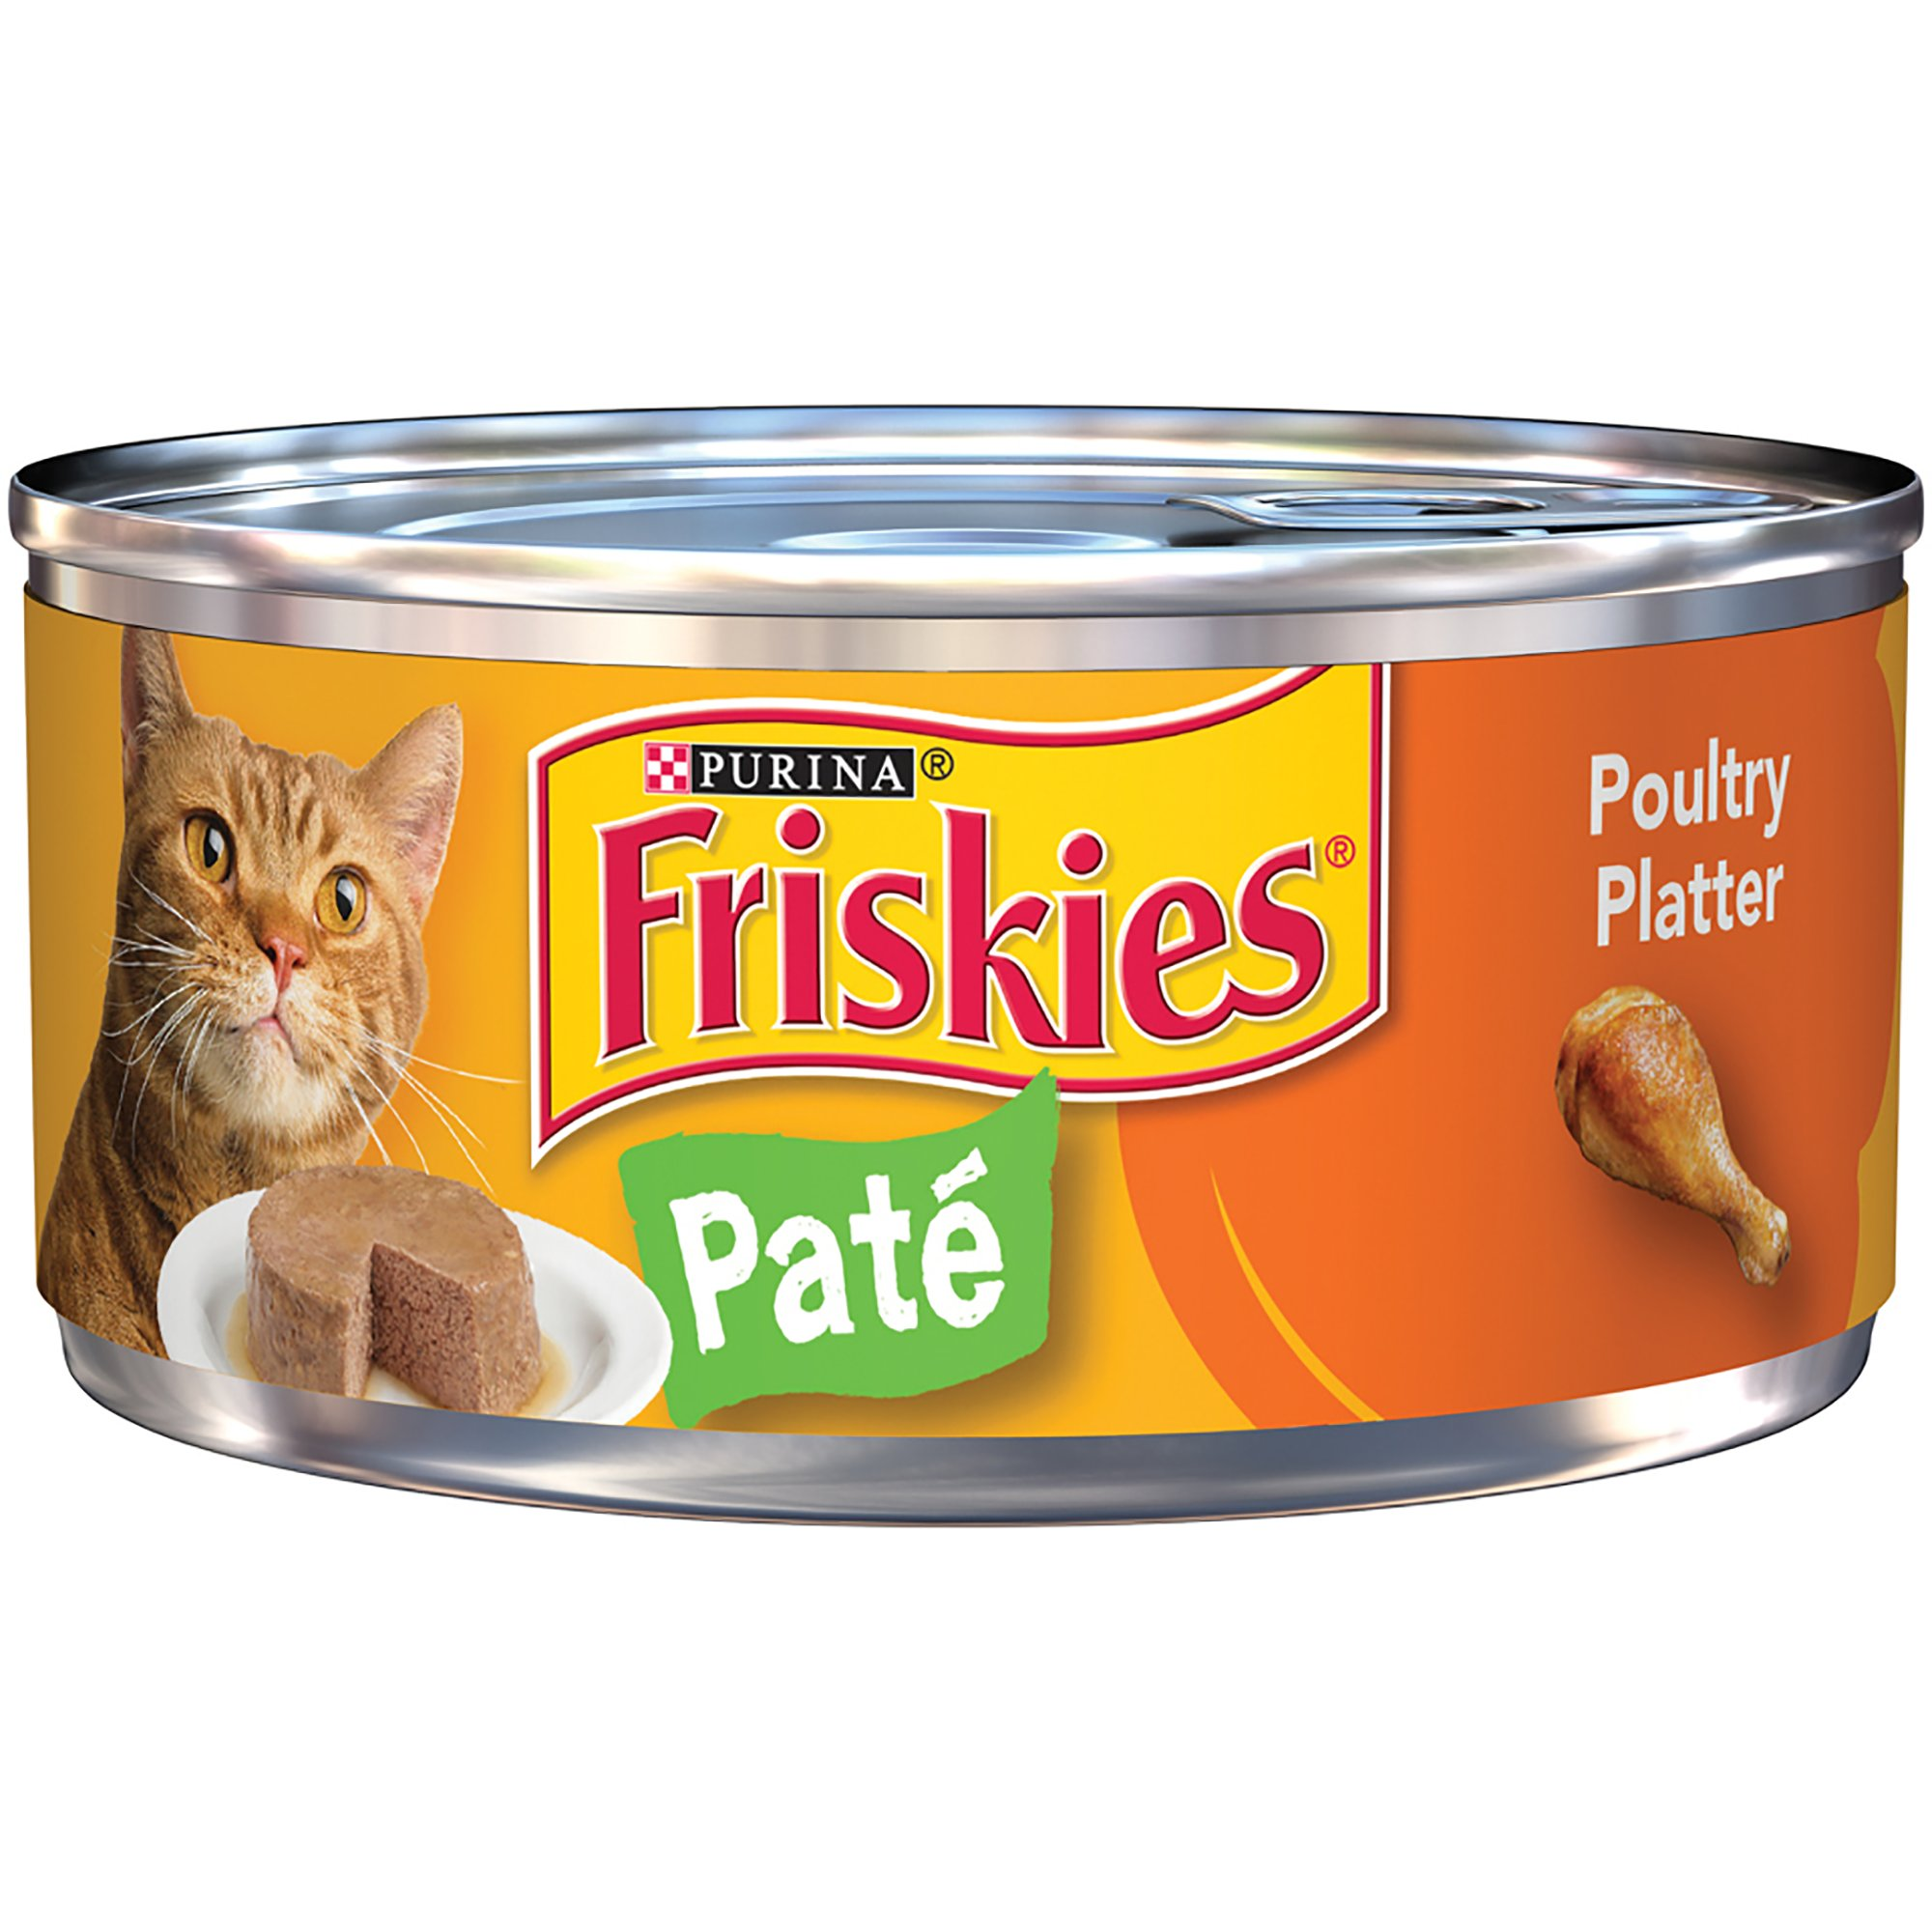 Friskies Classic Pate Canned Cat Food Chicken Amp Turkey